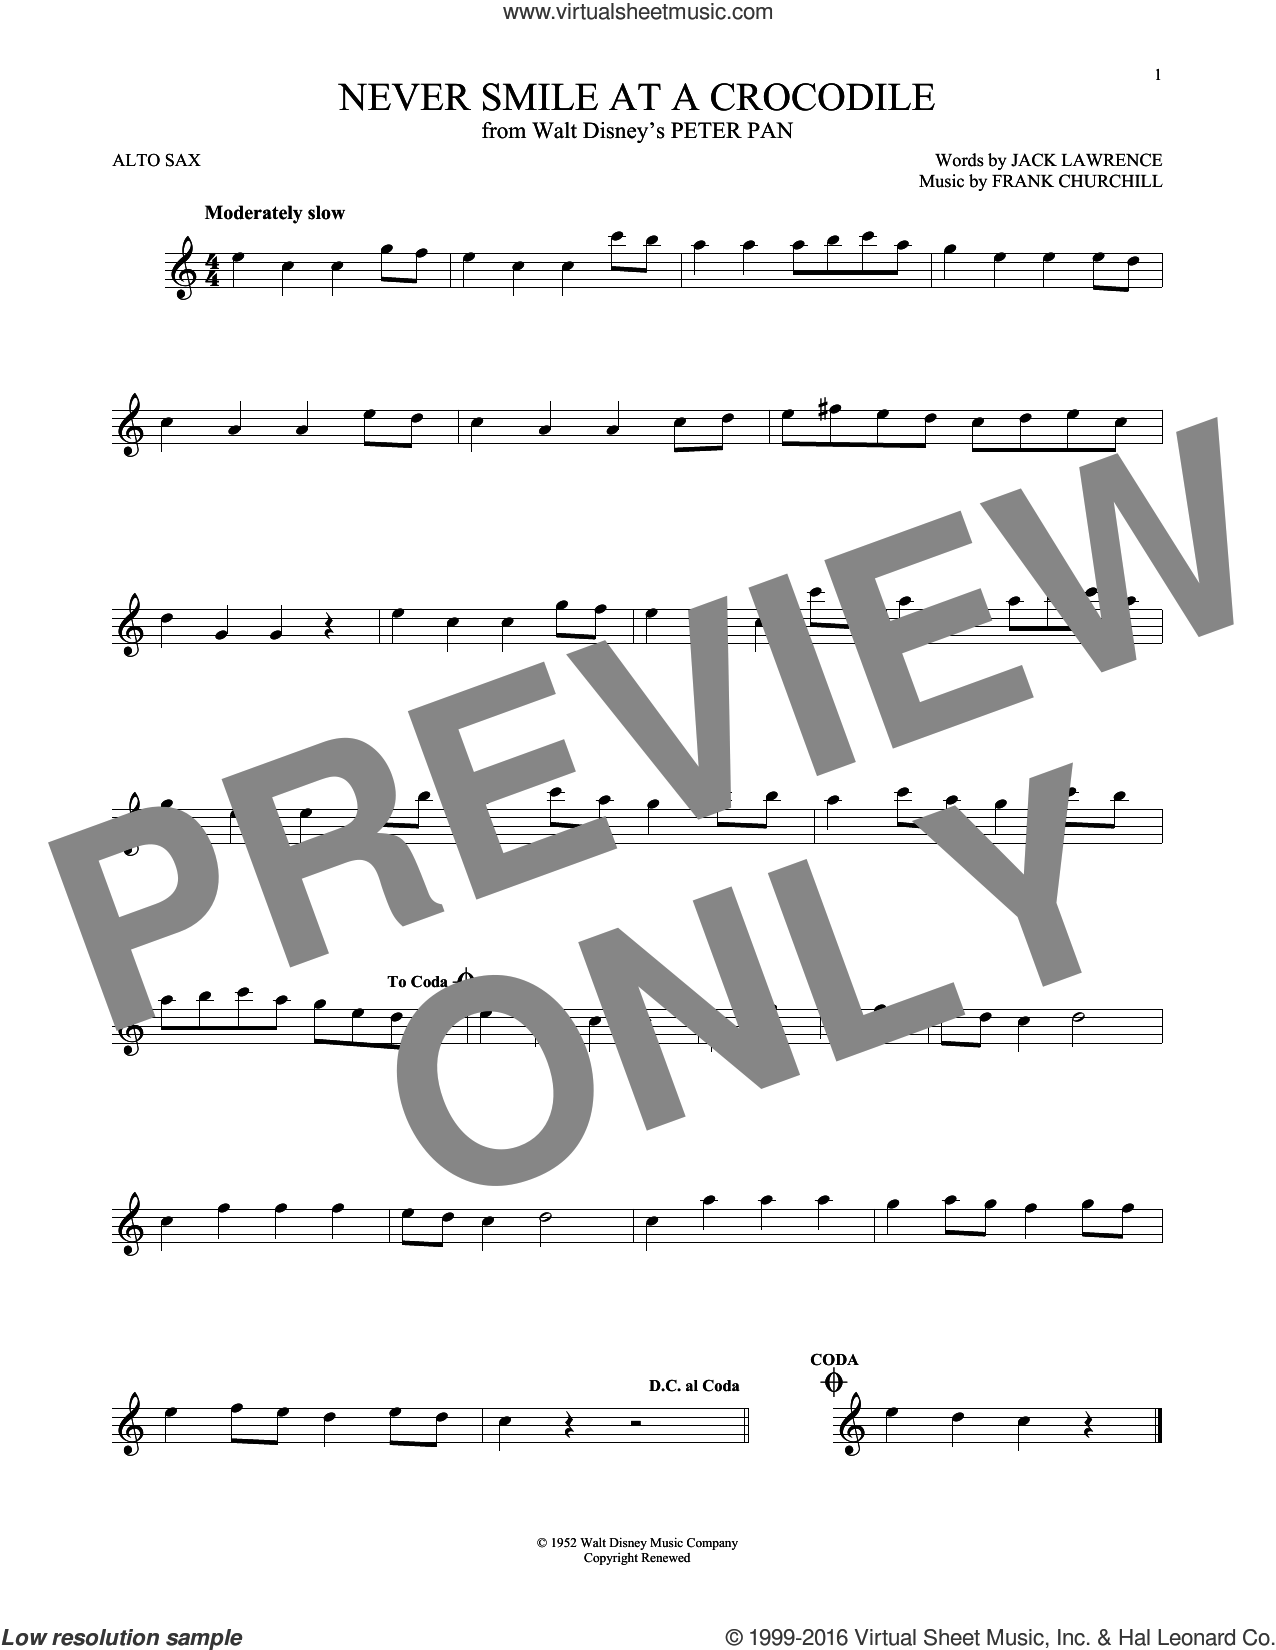 Never Smile At A Crocodile sheet music for alto saxophone solo by Jack Lawrence